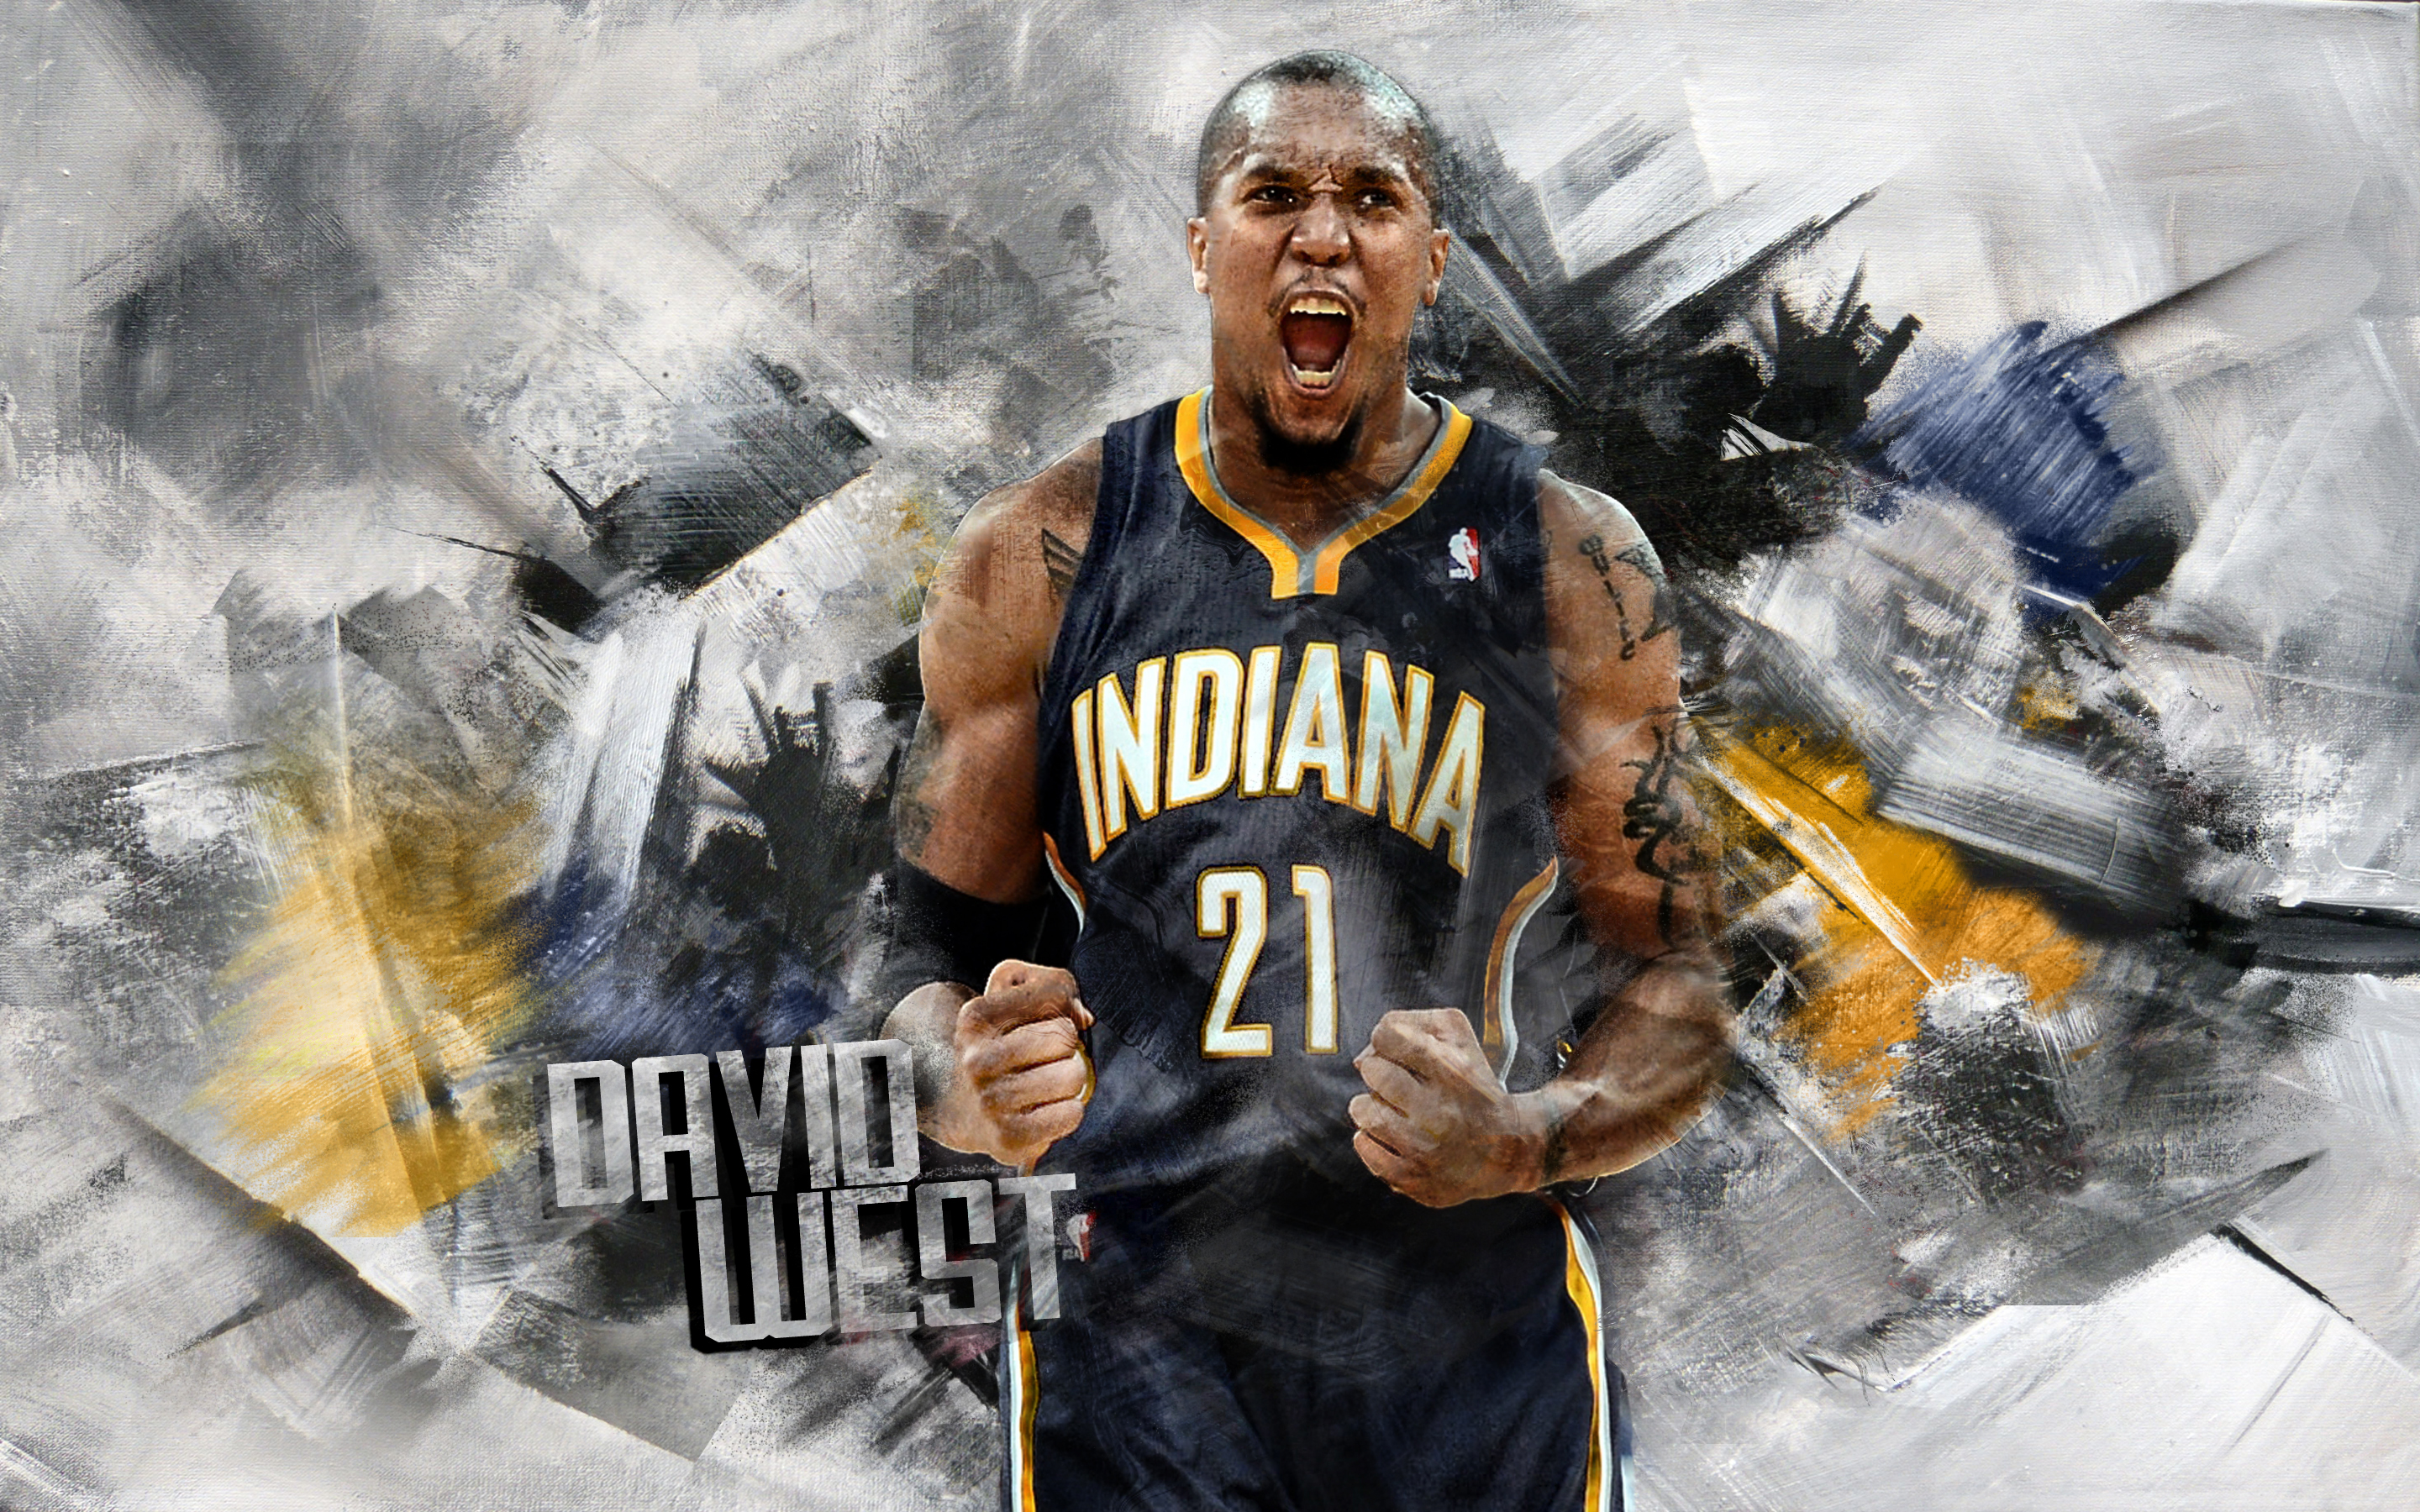 Pacers Iphone Wallpaper Indiana pacers nba basketball 2880x1800